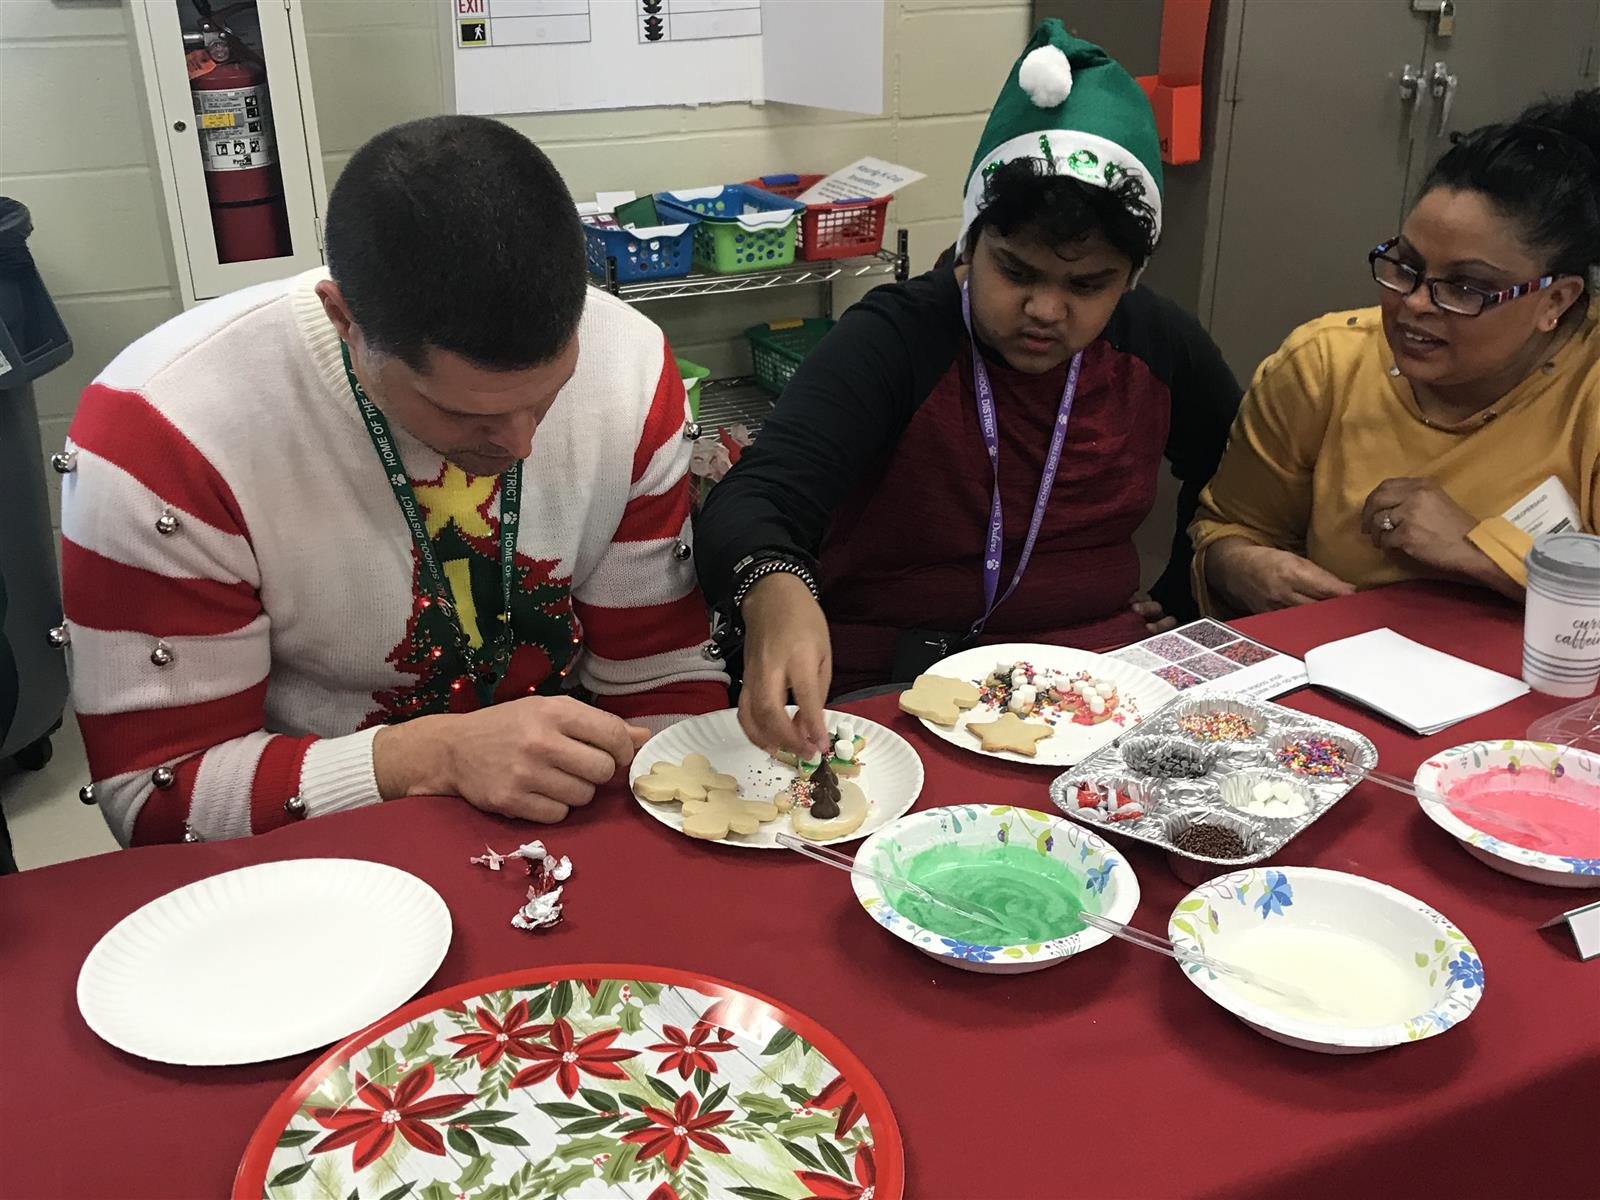 First-ever Cocoa and Cookies celebration at FHS